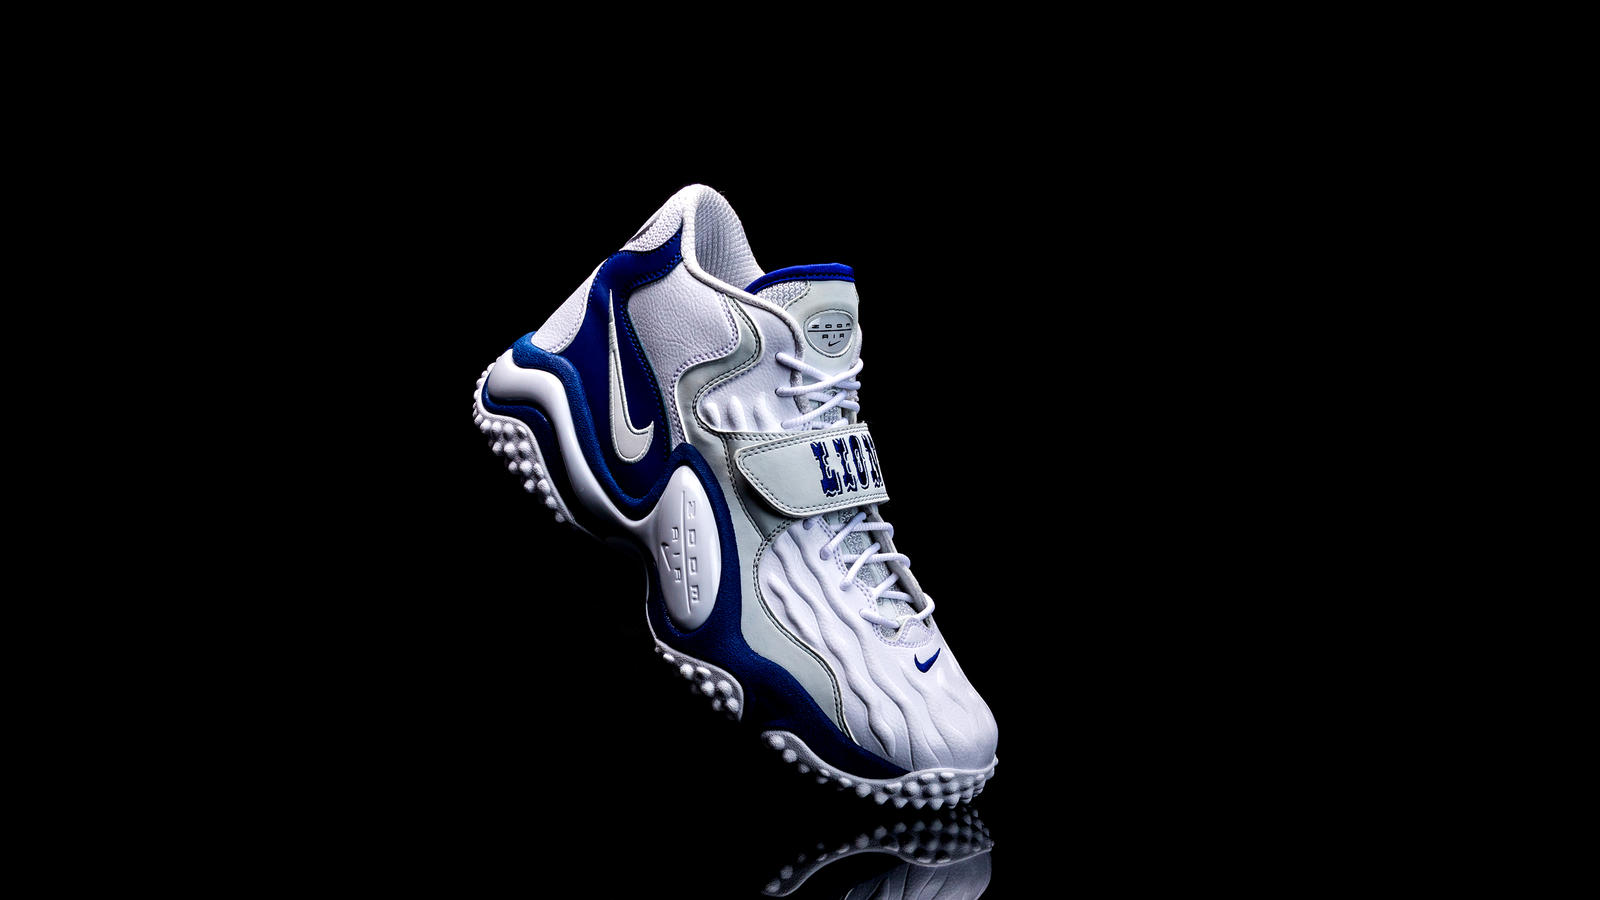 Barry Sanders Nike Air Zoom Turf Jet 97 1